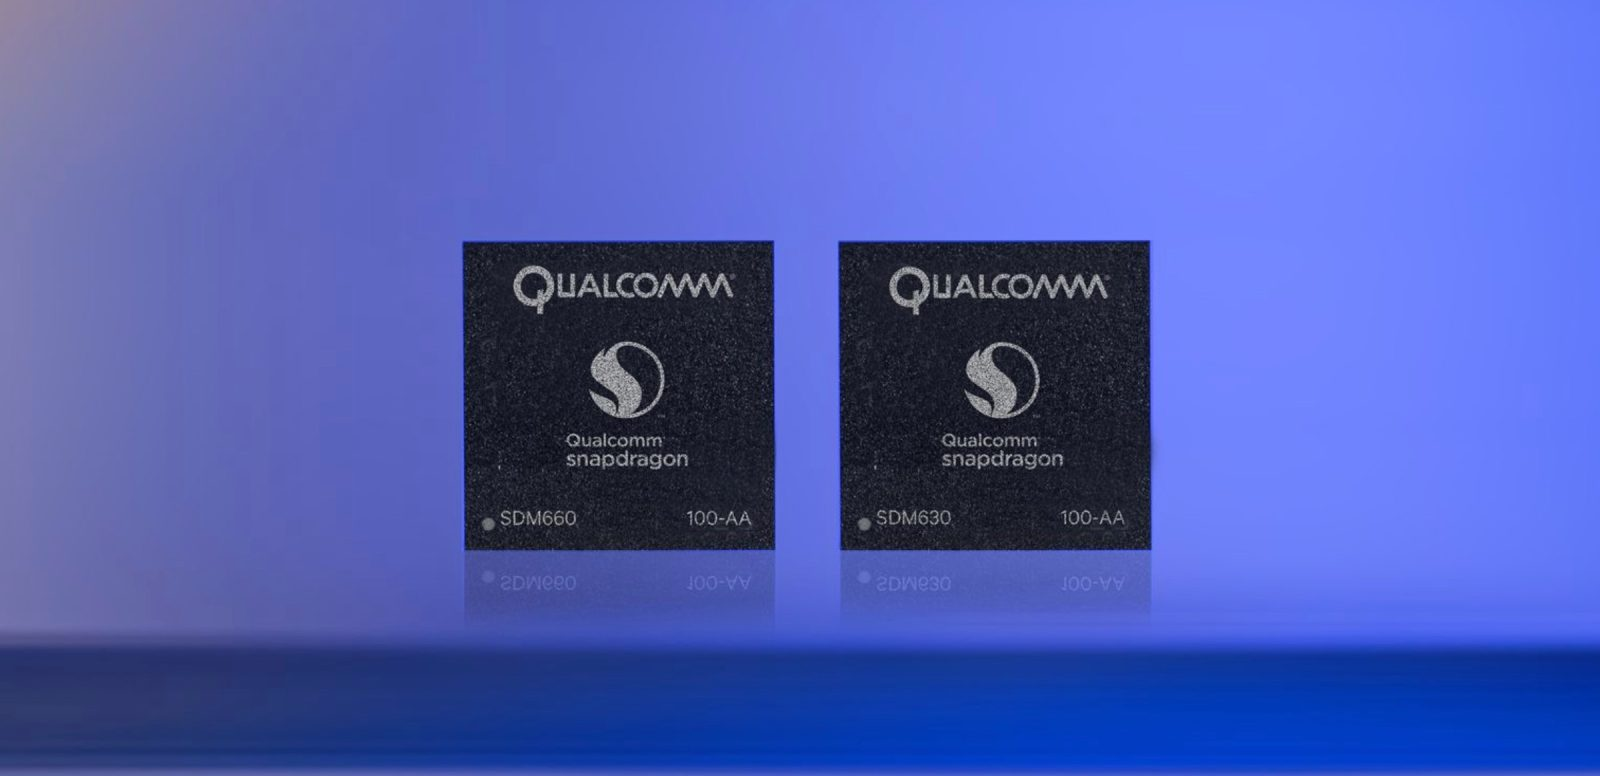 Qualcomm introduces Snapdragon 630 & 660 processors w/ improved power management & more